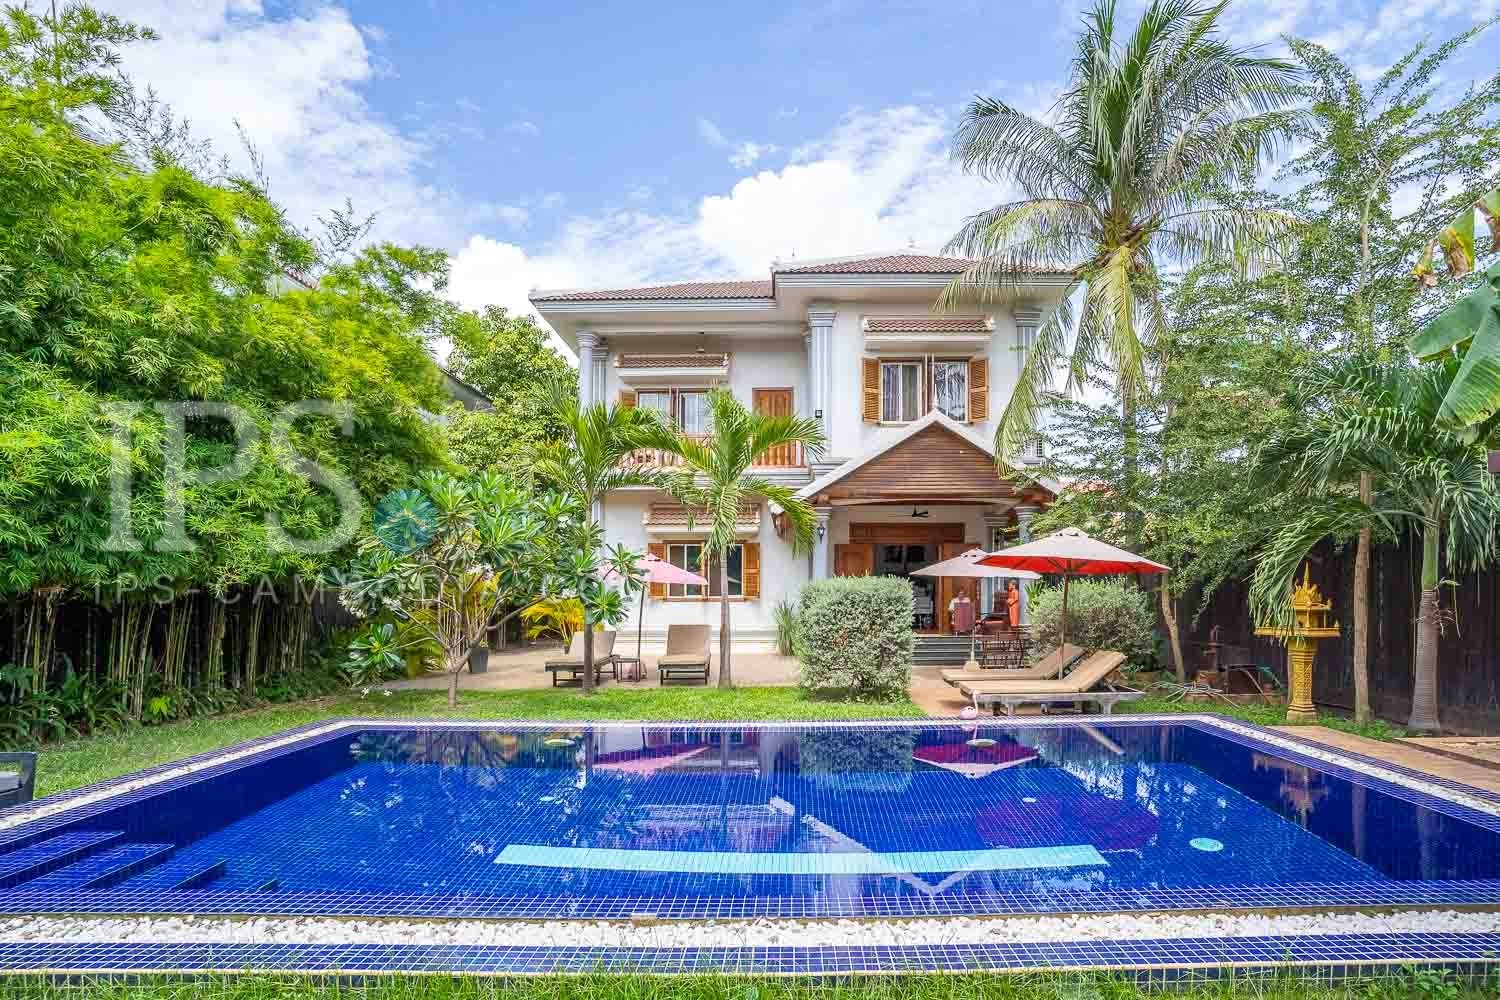 5 Bedroom Boutique Hotel Business For Sale - Svay Dangkum, Siem Reap